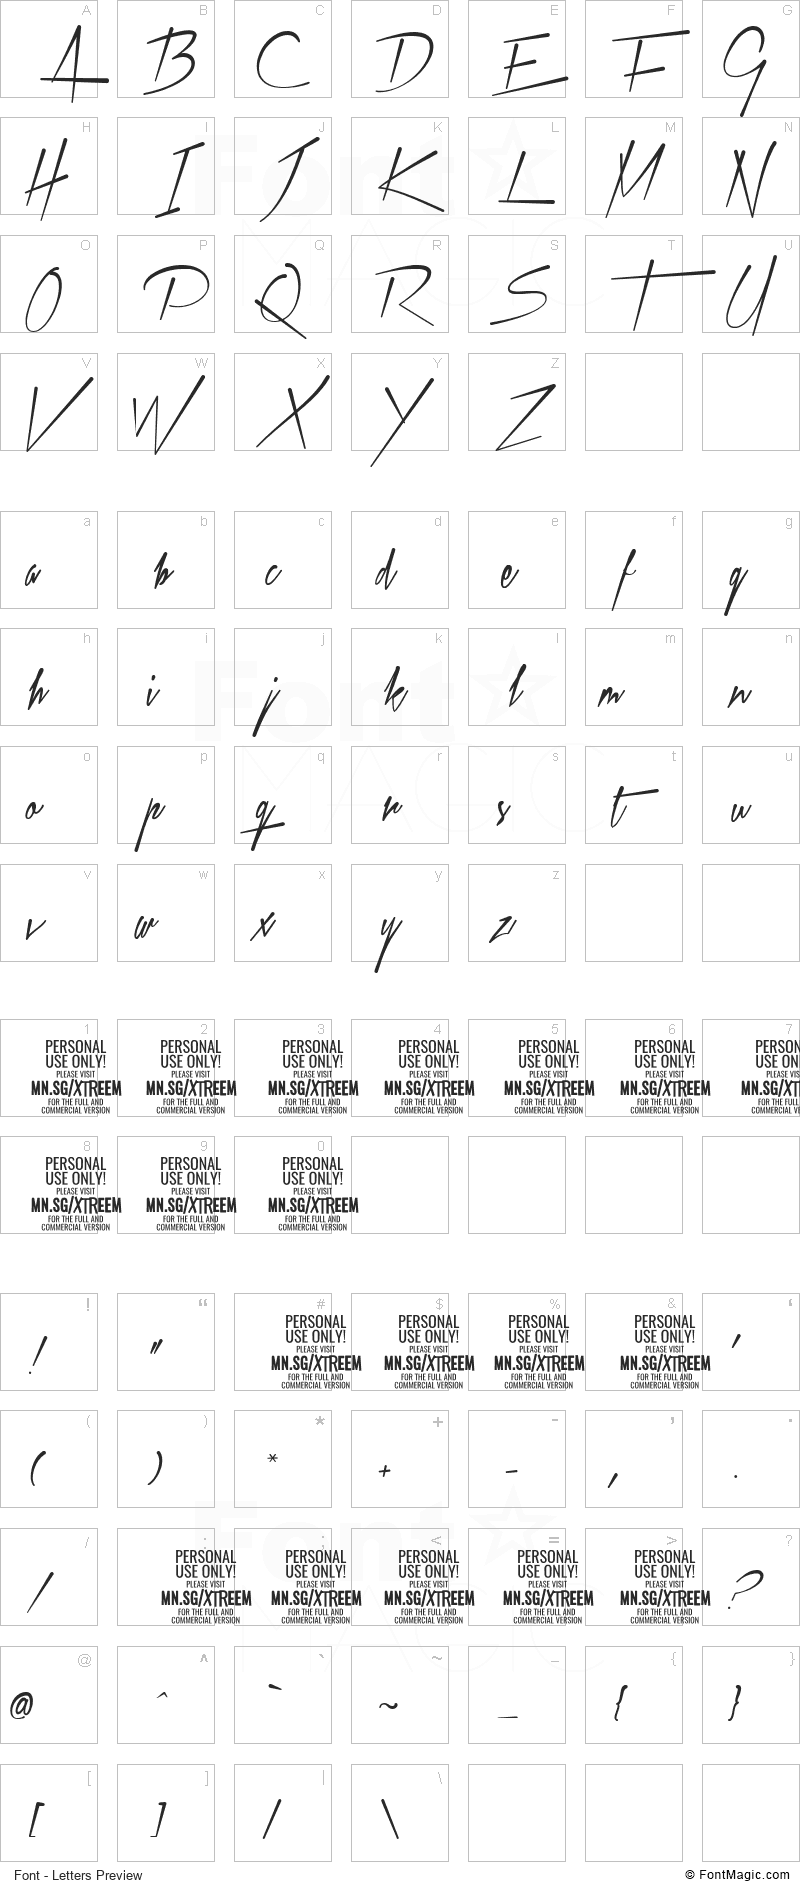 Xtreem Font - All Latters Preview Chart